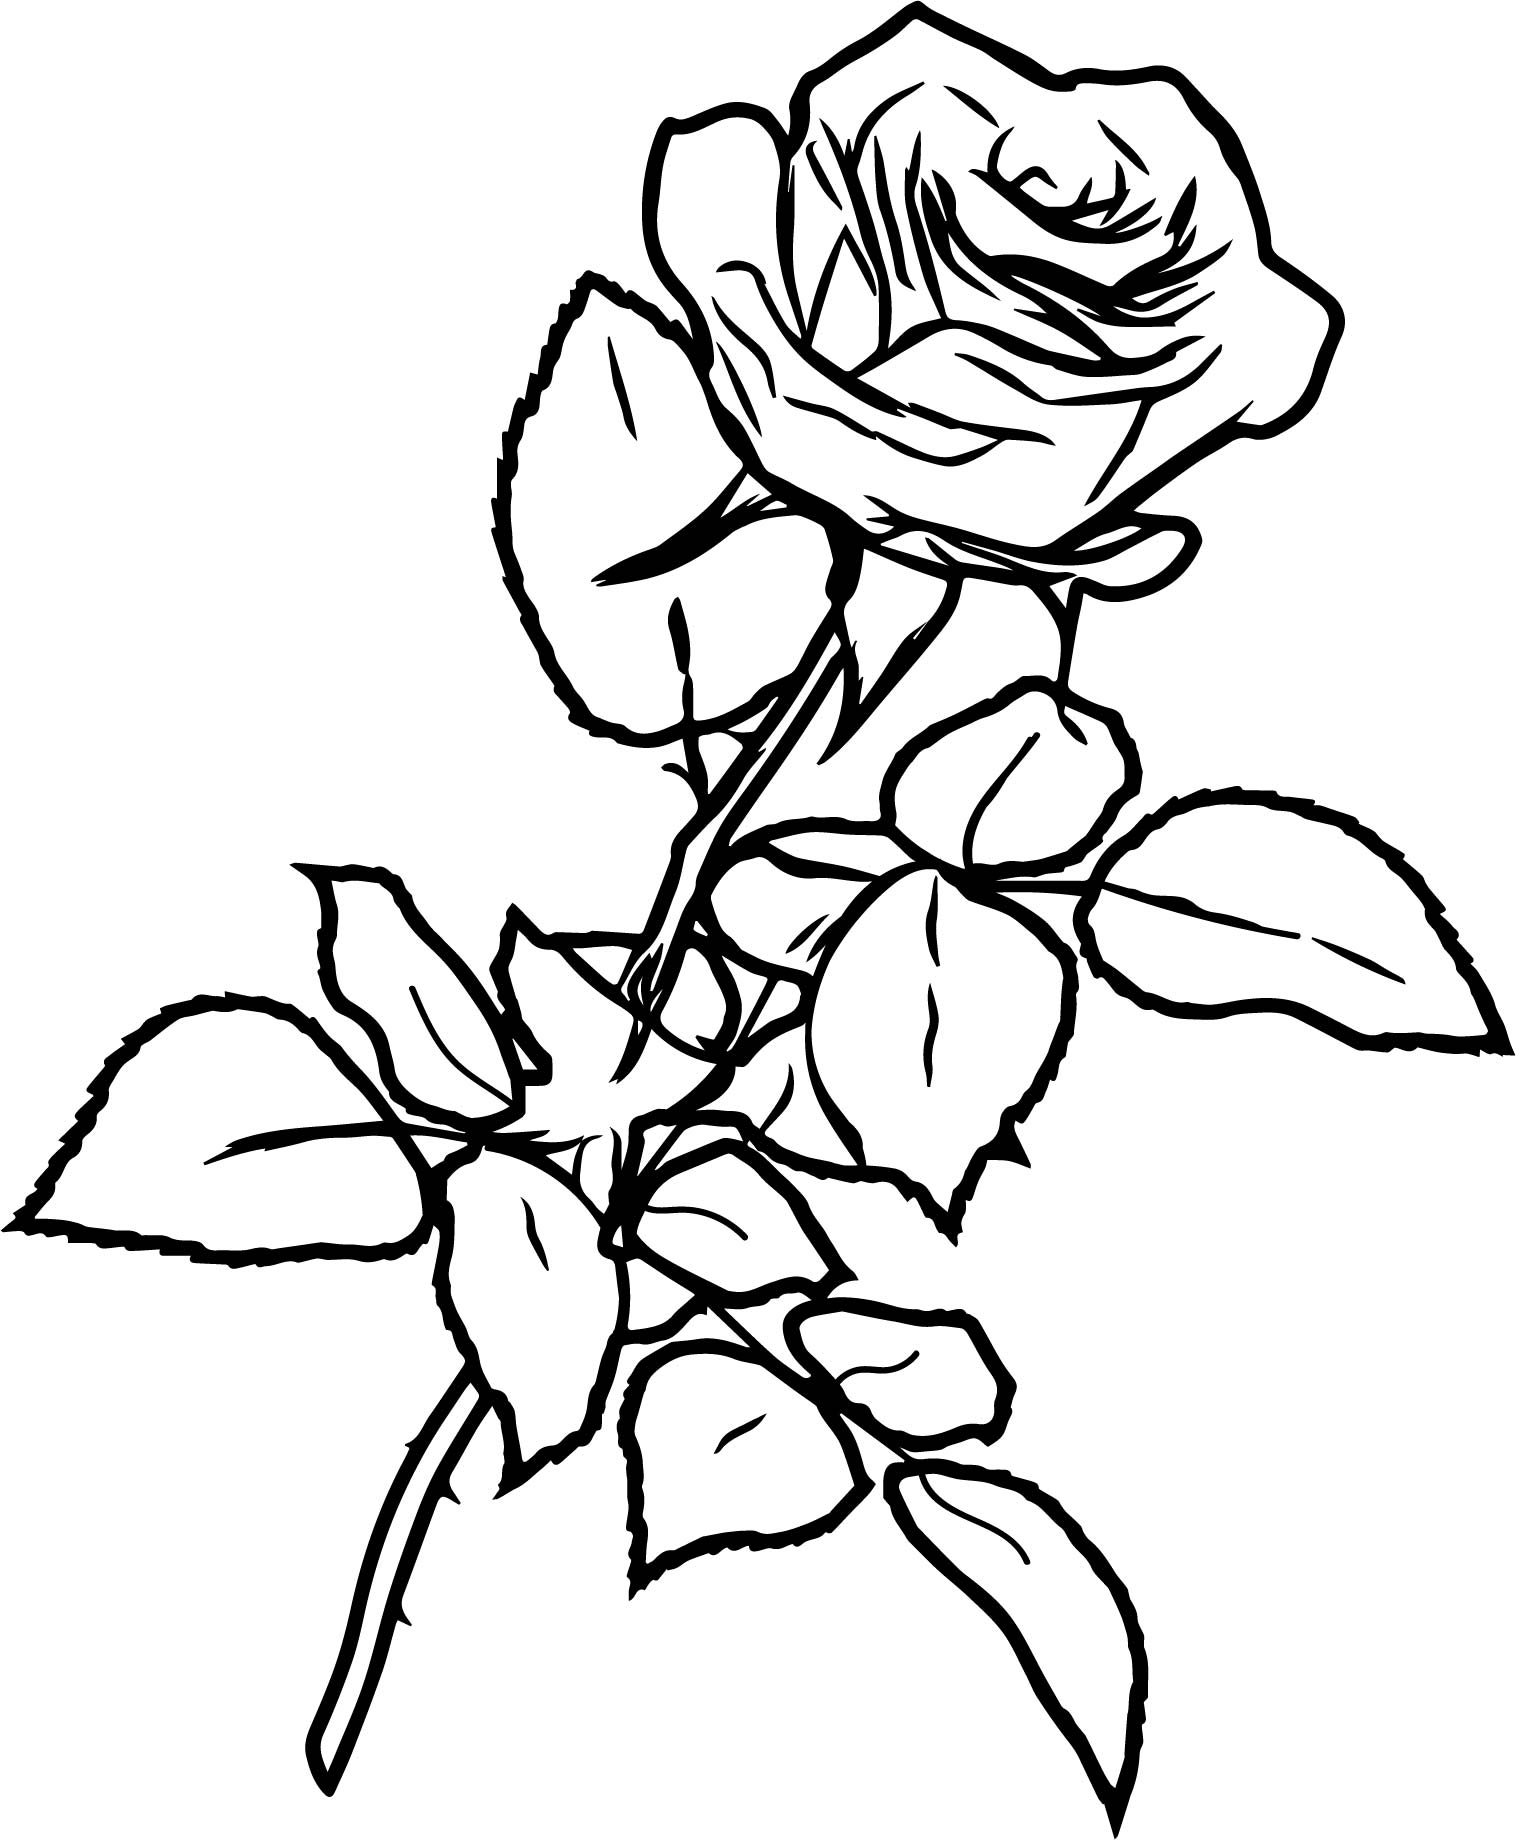 Ink Coloring Pages | www.pixshark.com - Images Galleries